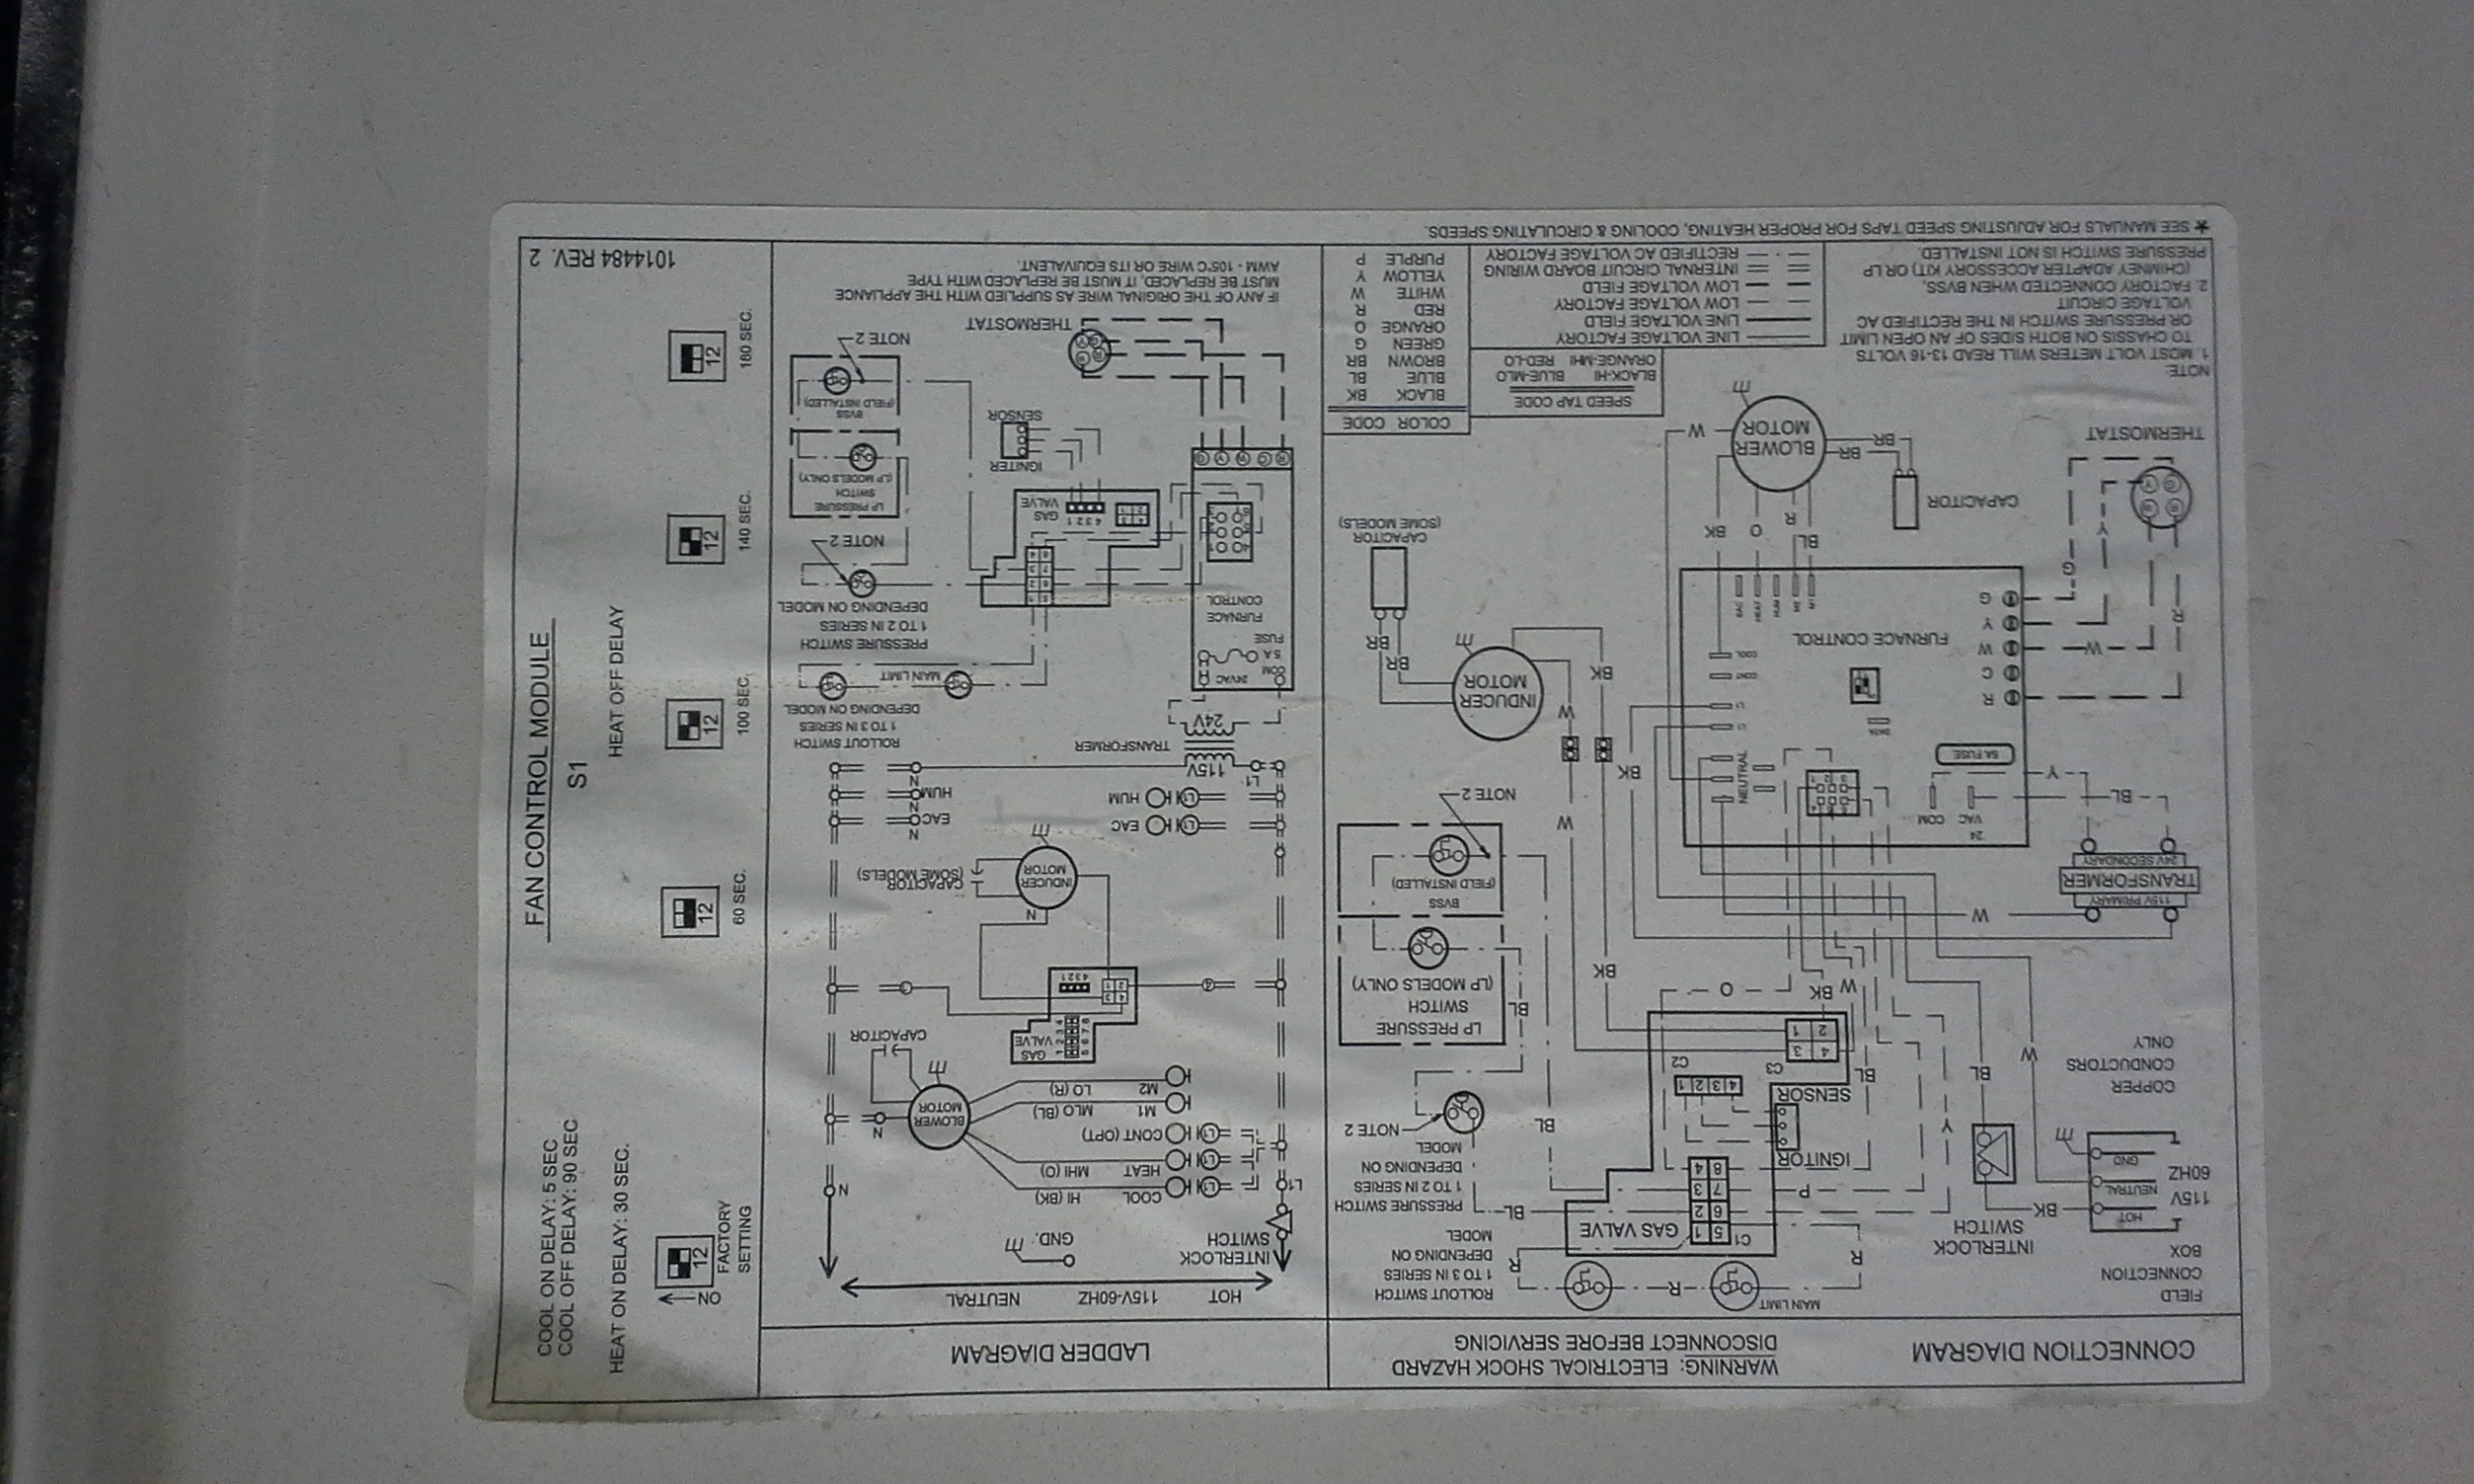 wiring okay ; i have a comfortmaker n8mpn075b12a1 and the led flashs 3 Basic Electrical Wiring Diagrams at edmiracle.co